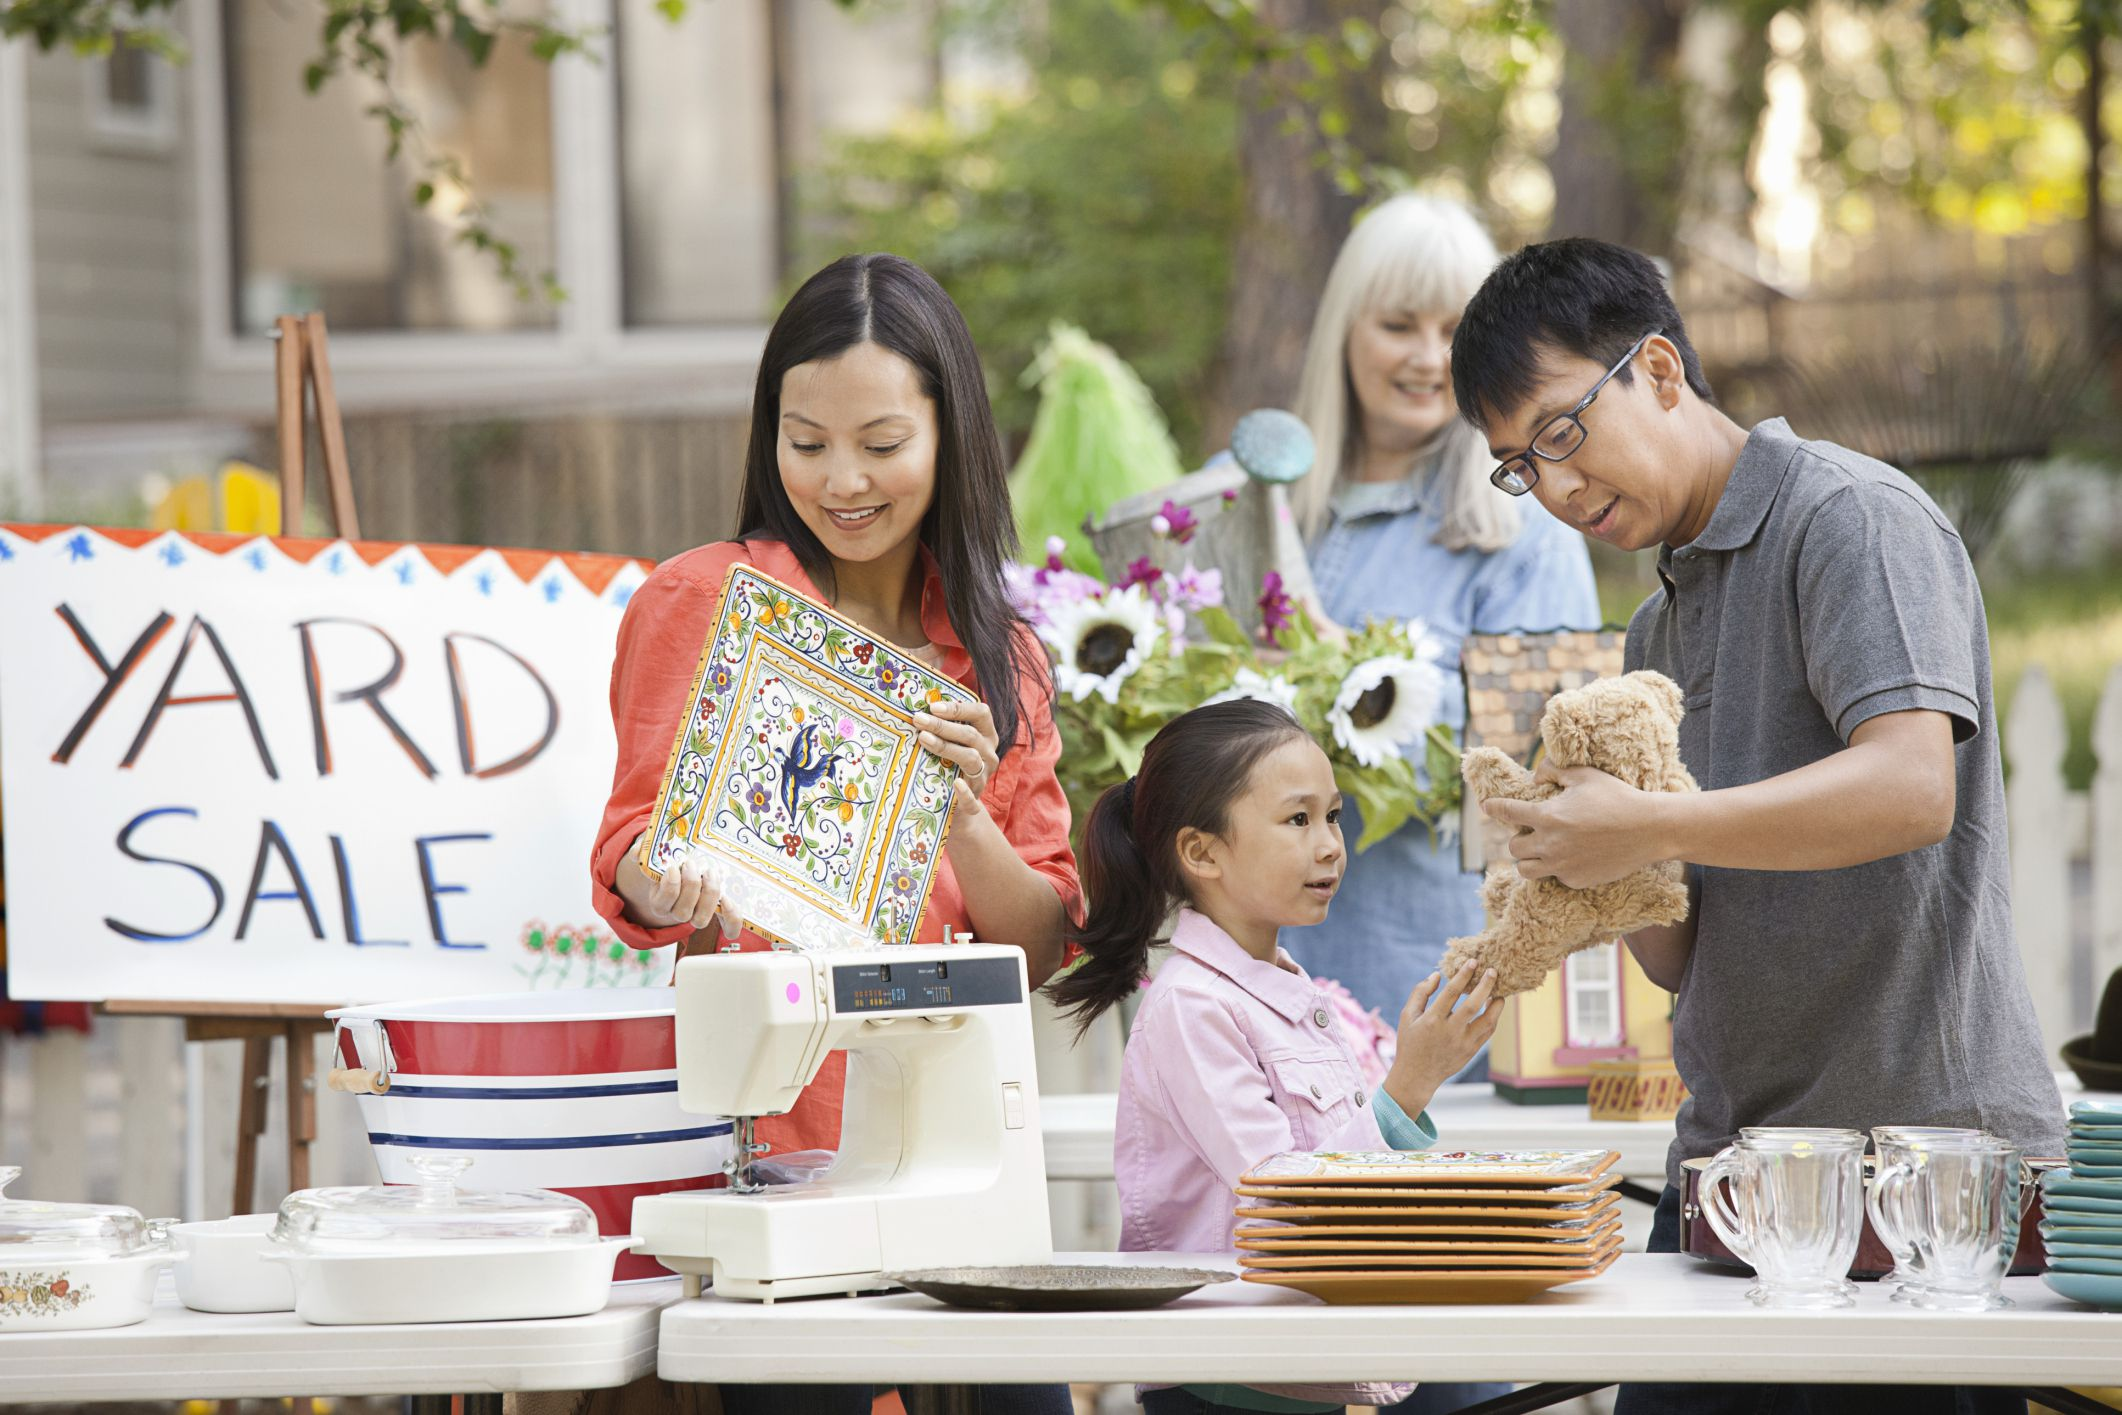 5 Best Ways To Find Yard Sales In Your Area